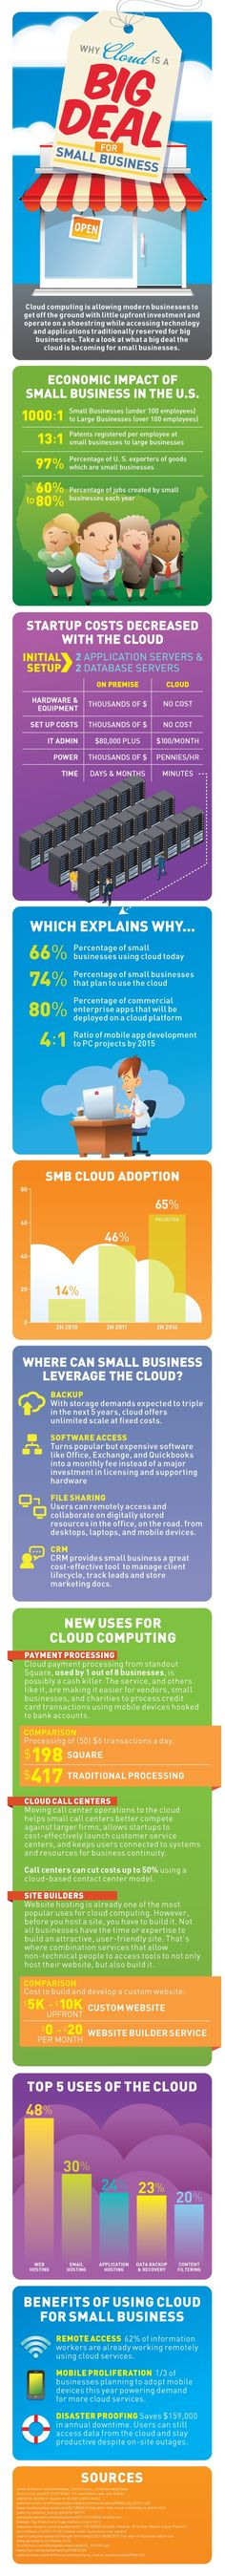 Why Cloud is a Big Deal for Small Business